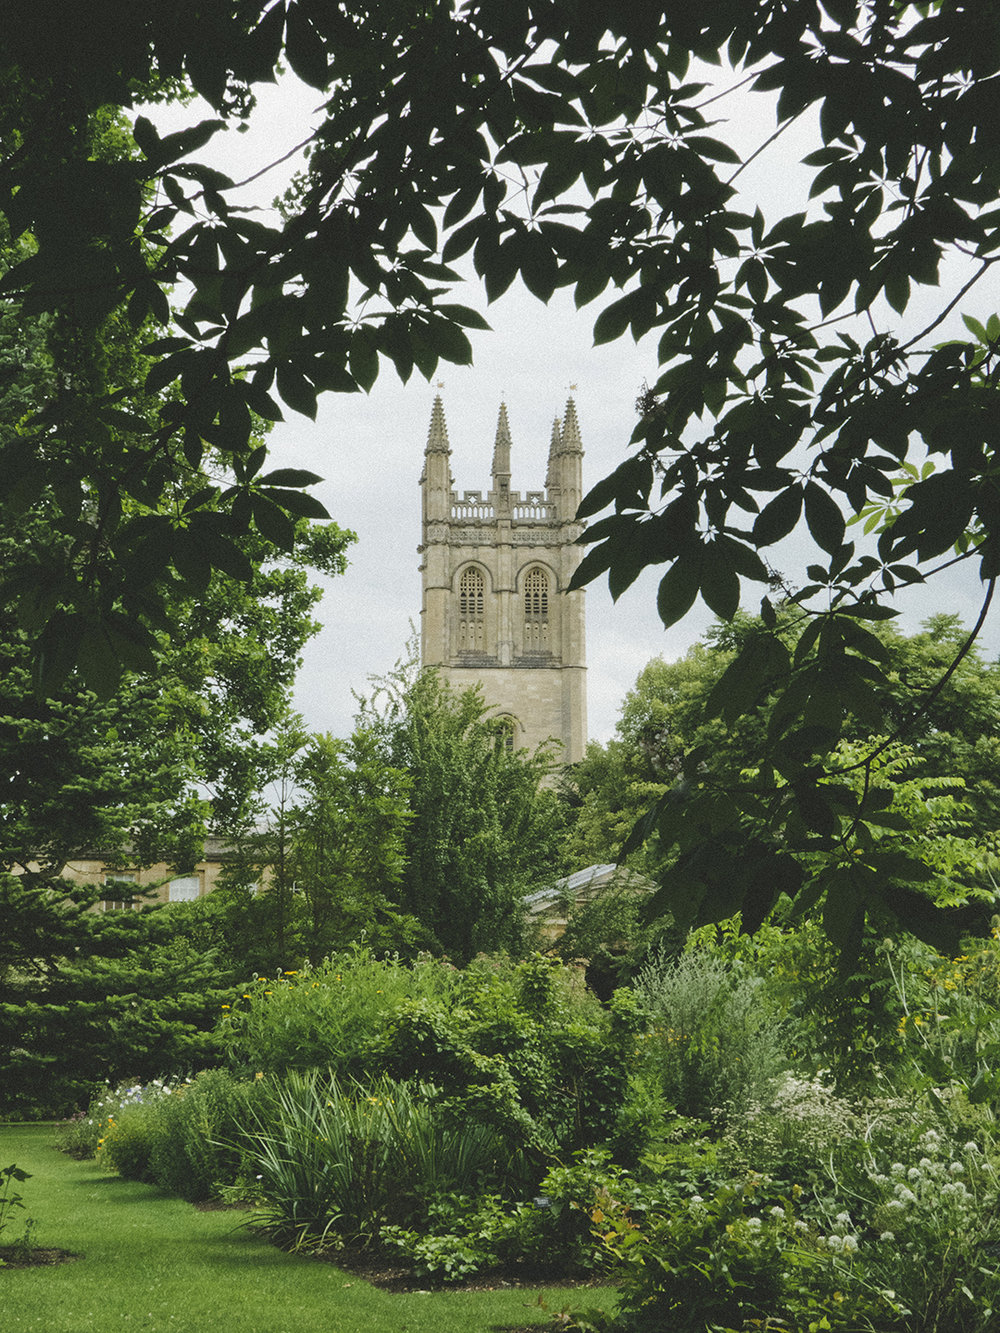 Print Club visit the Oxford Botanic Gardens | Print Club Ltd. Journal